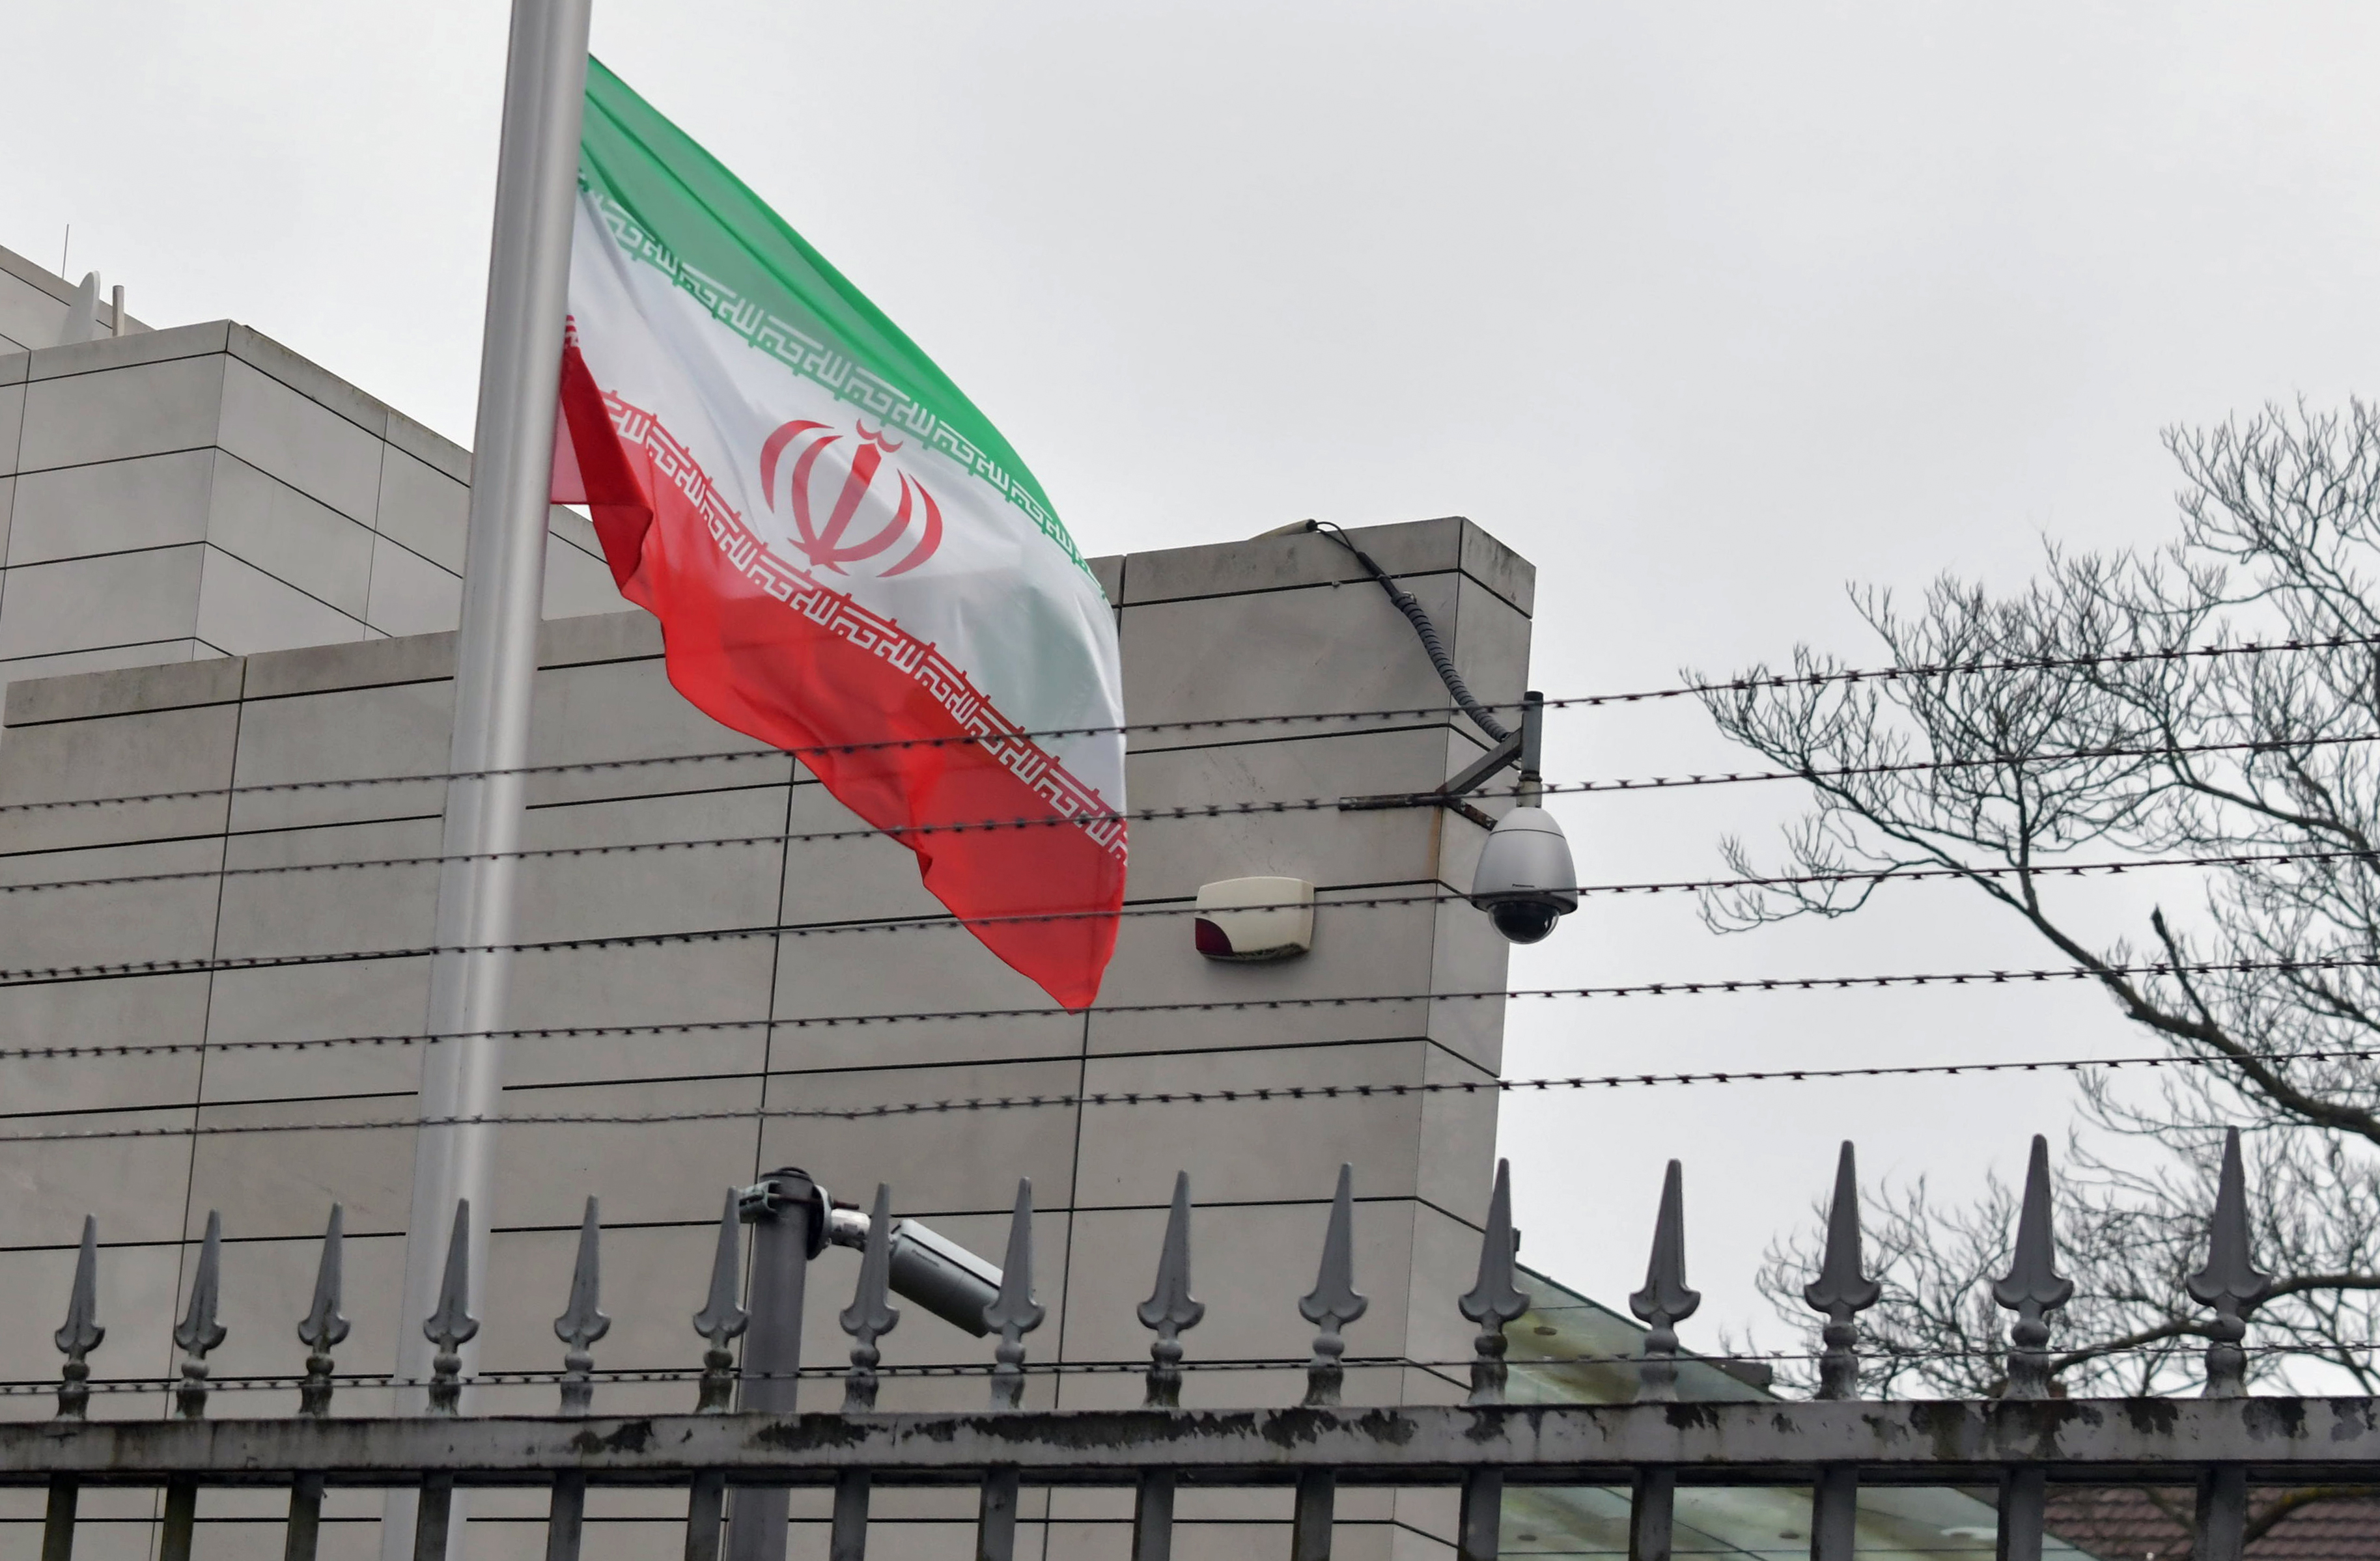 The Iranian flag at half-mast at their embassy in Berlin on January 3, 2020, following the killing of Iranian commander Qasem Soleimani.